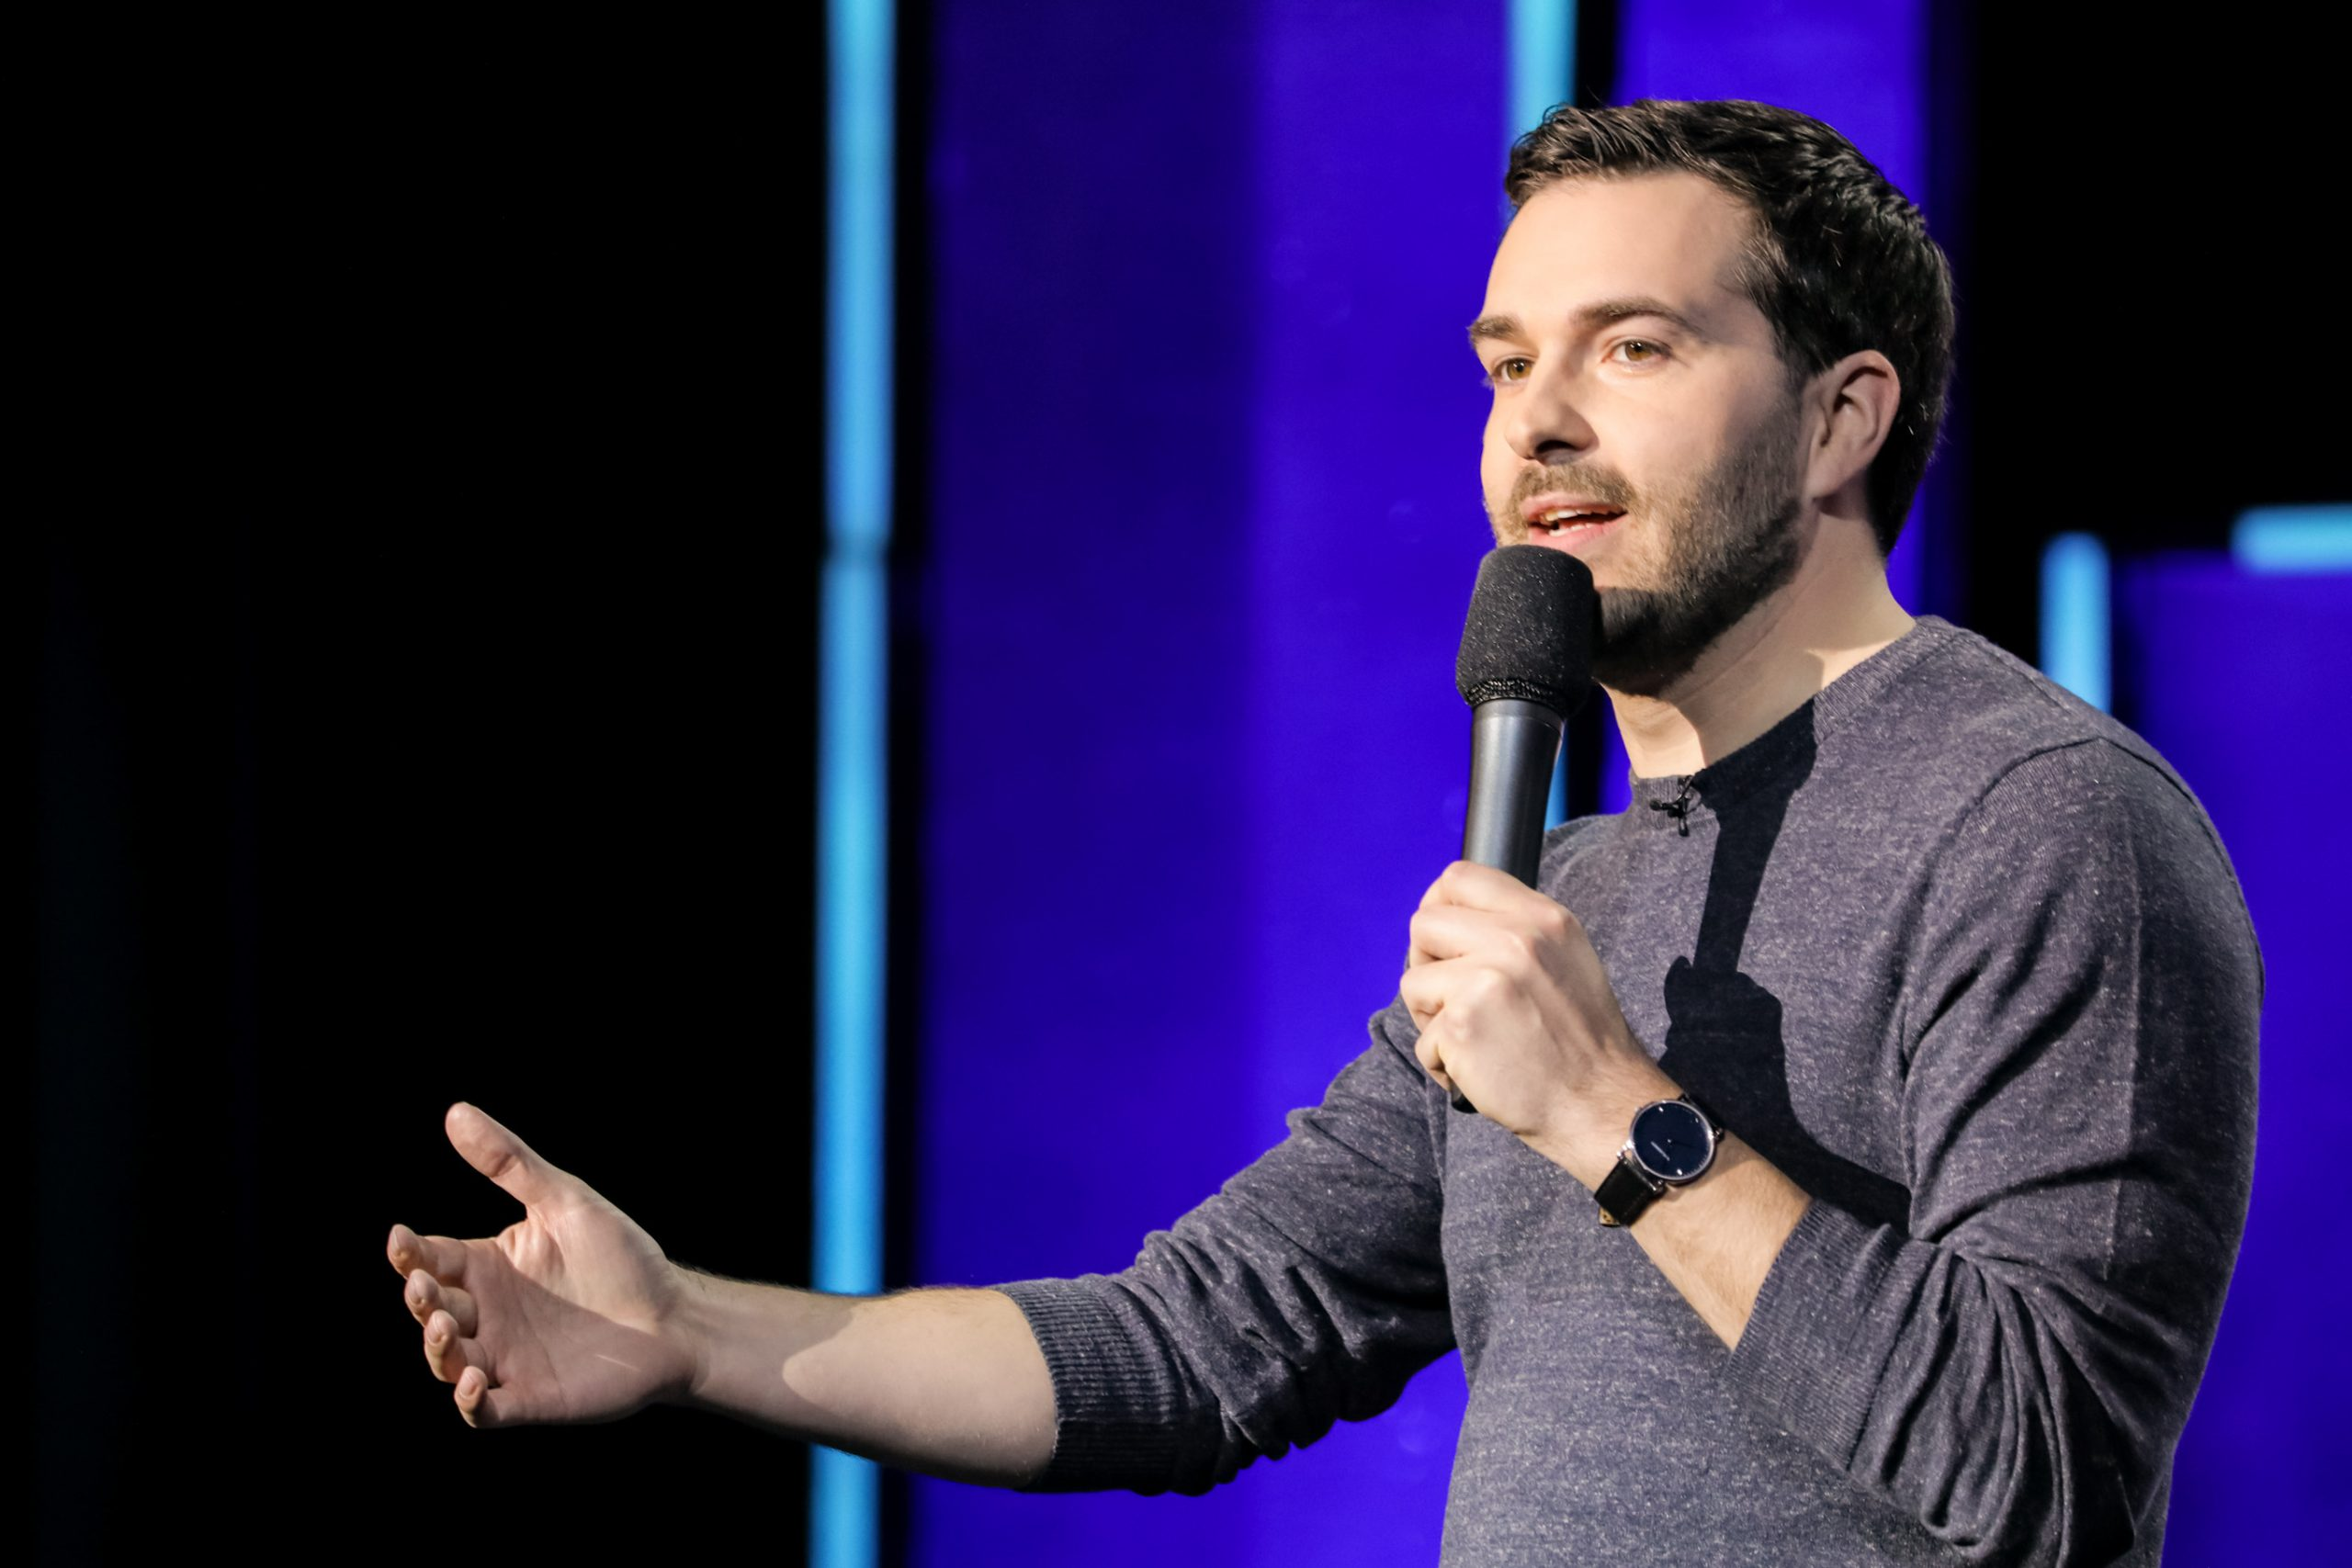 john cullen comedian on stage tour